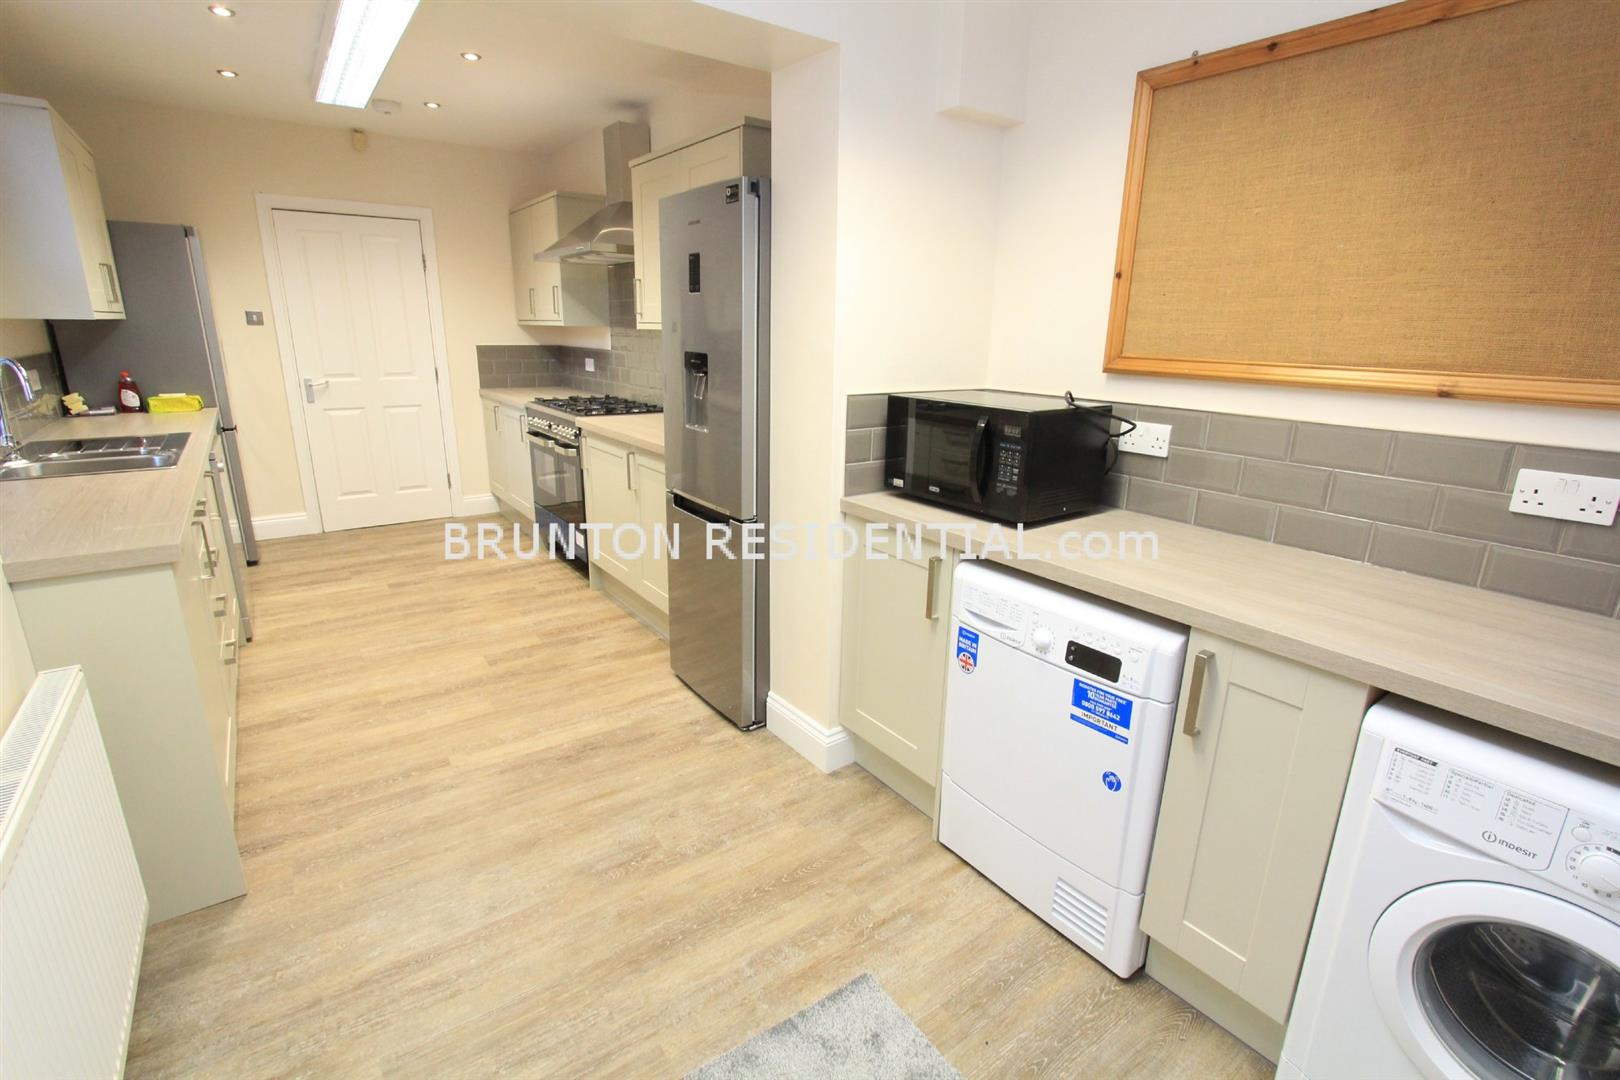 1 bed house share to rent in Newcastle Upon Tyne, NE6 5HU  - Property Image 7